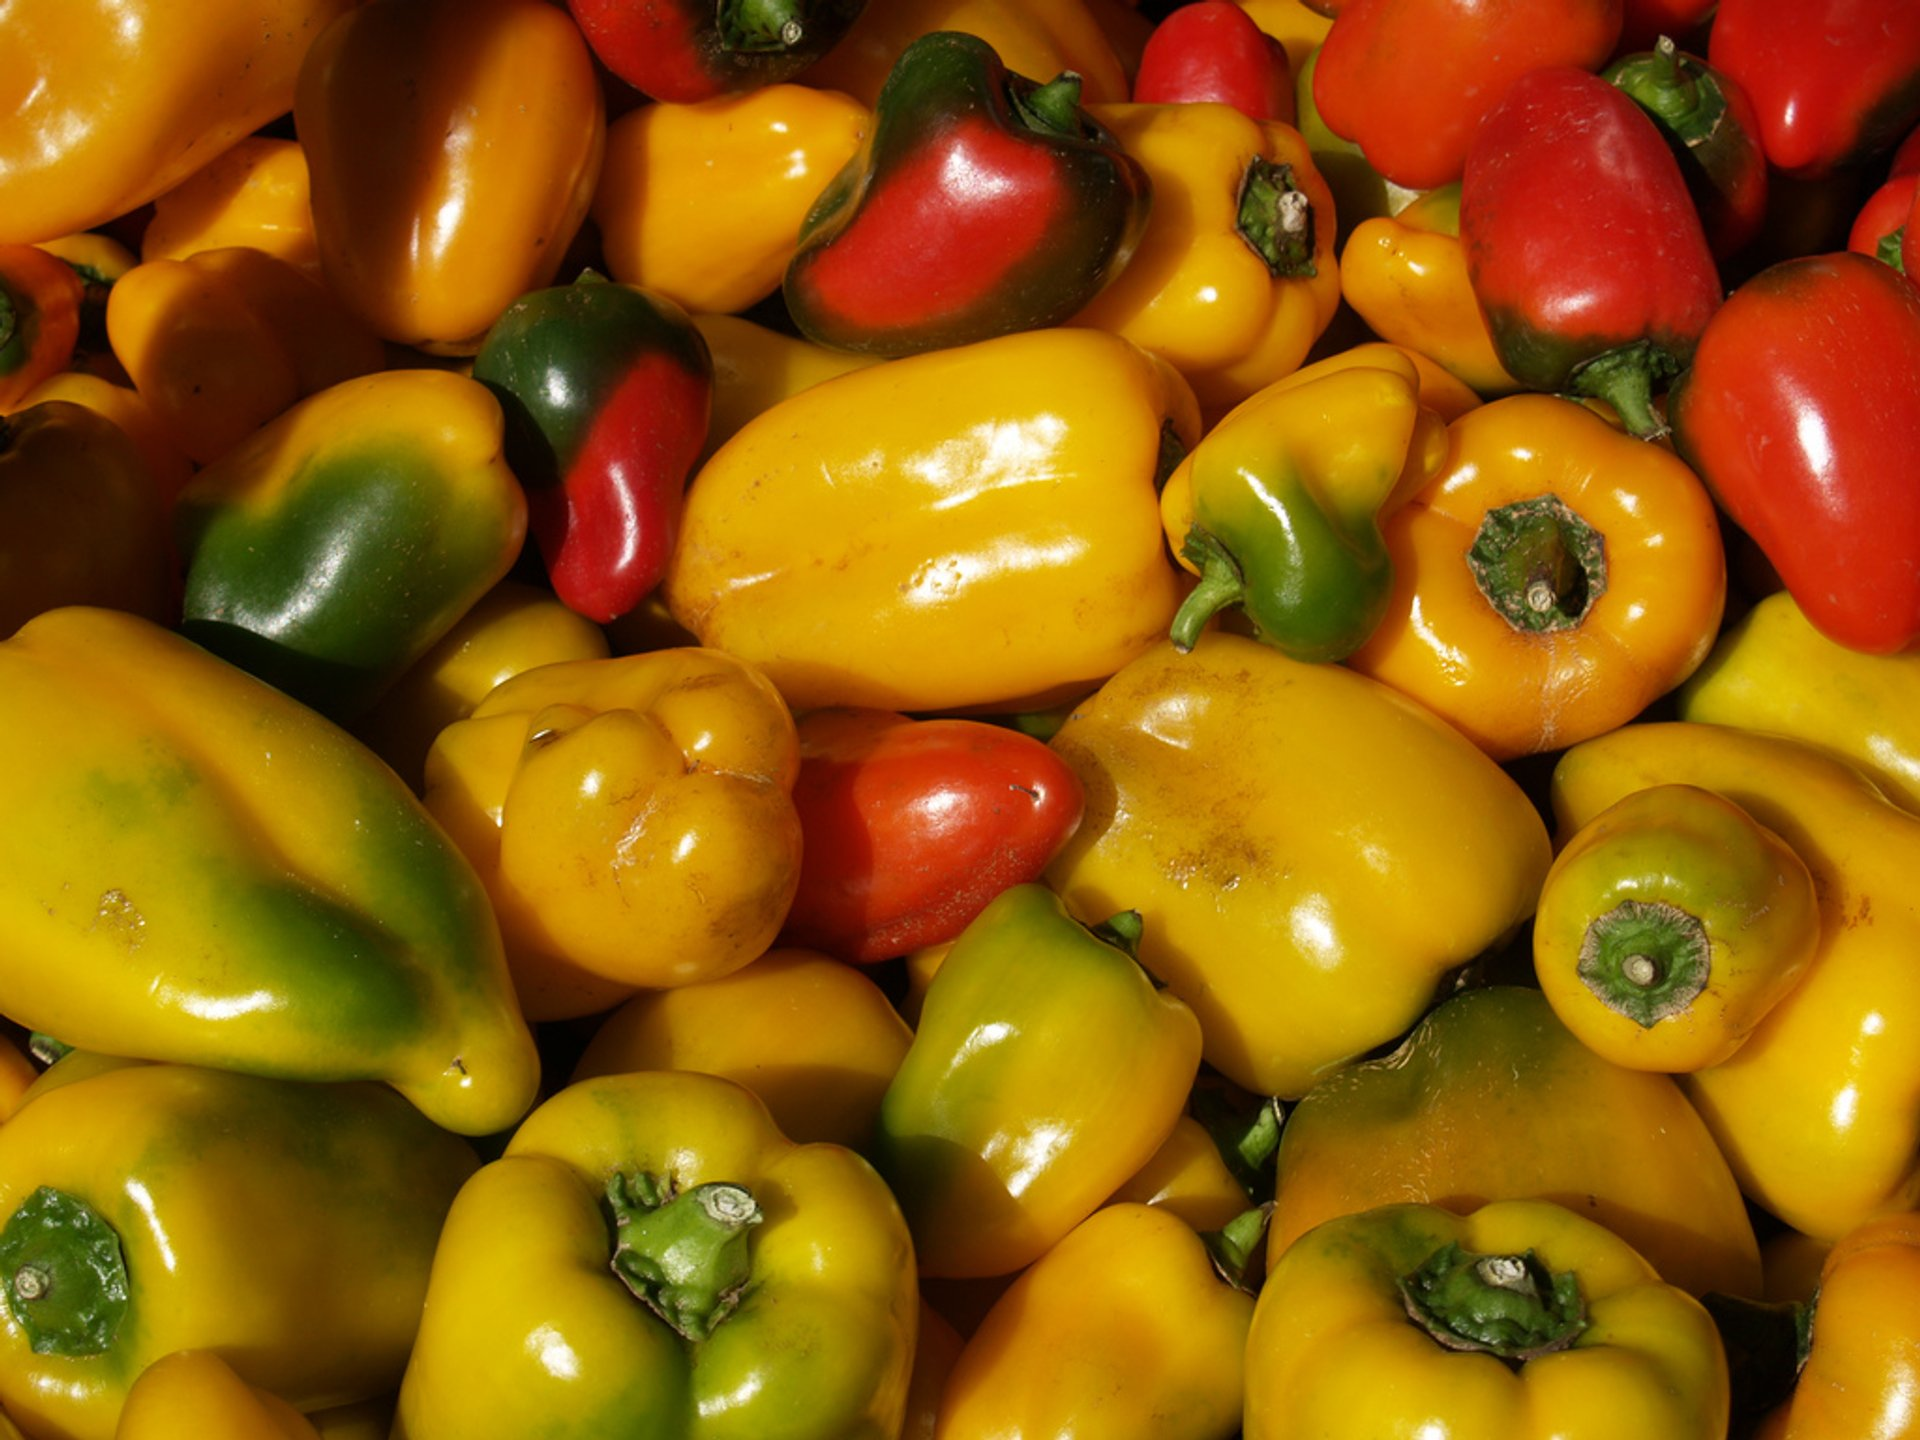 Capsicum in Australia - Best Season 2020